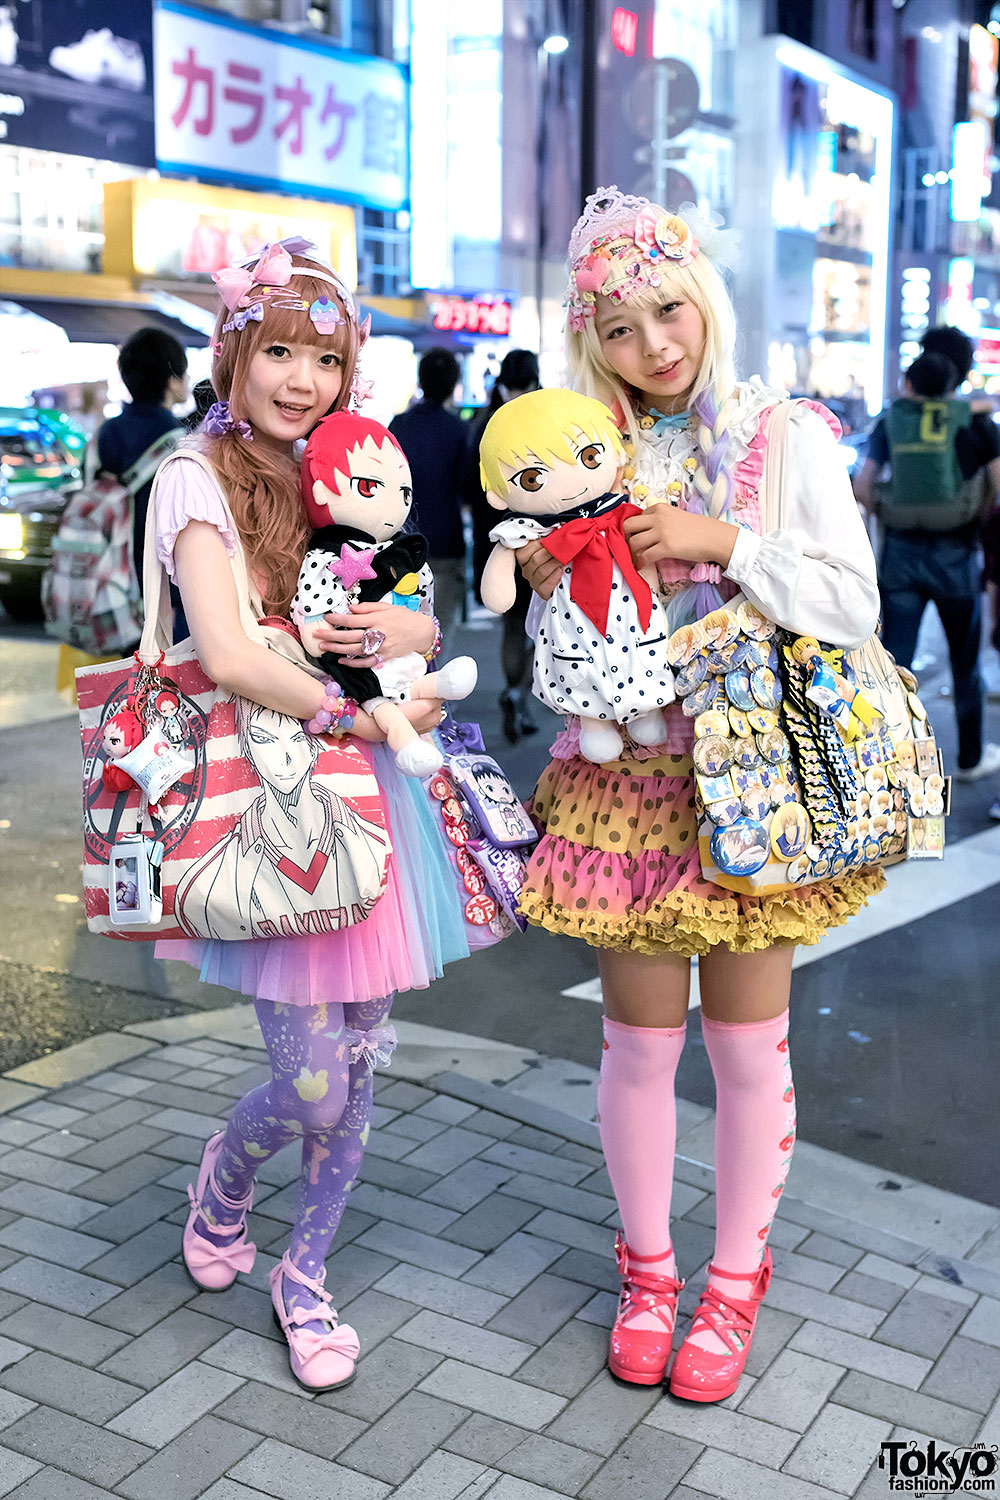 Harajuku Decora Girls W Kuroko S Basketball Goods Colorful Fashion